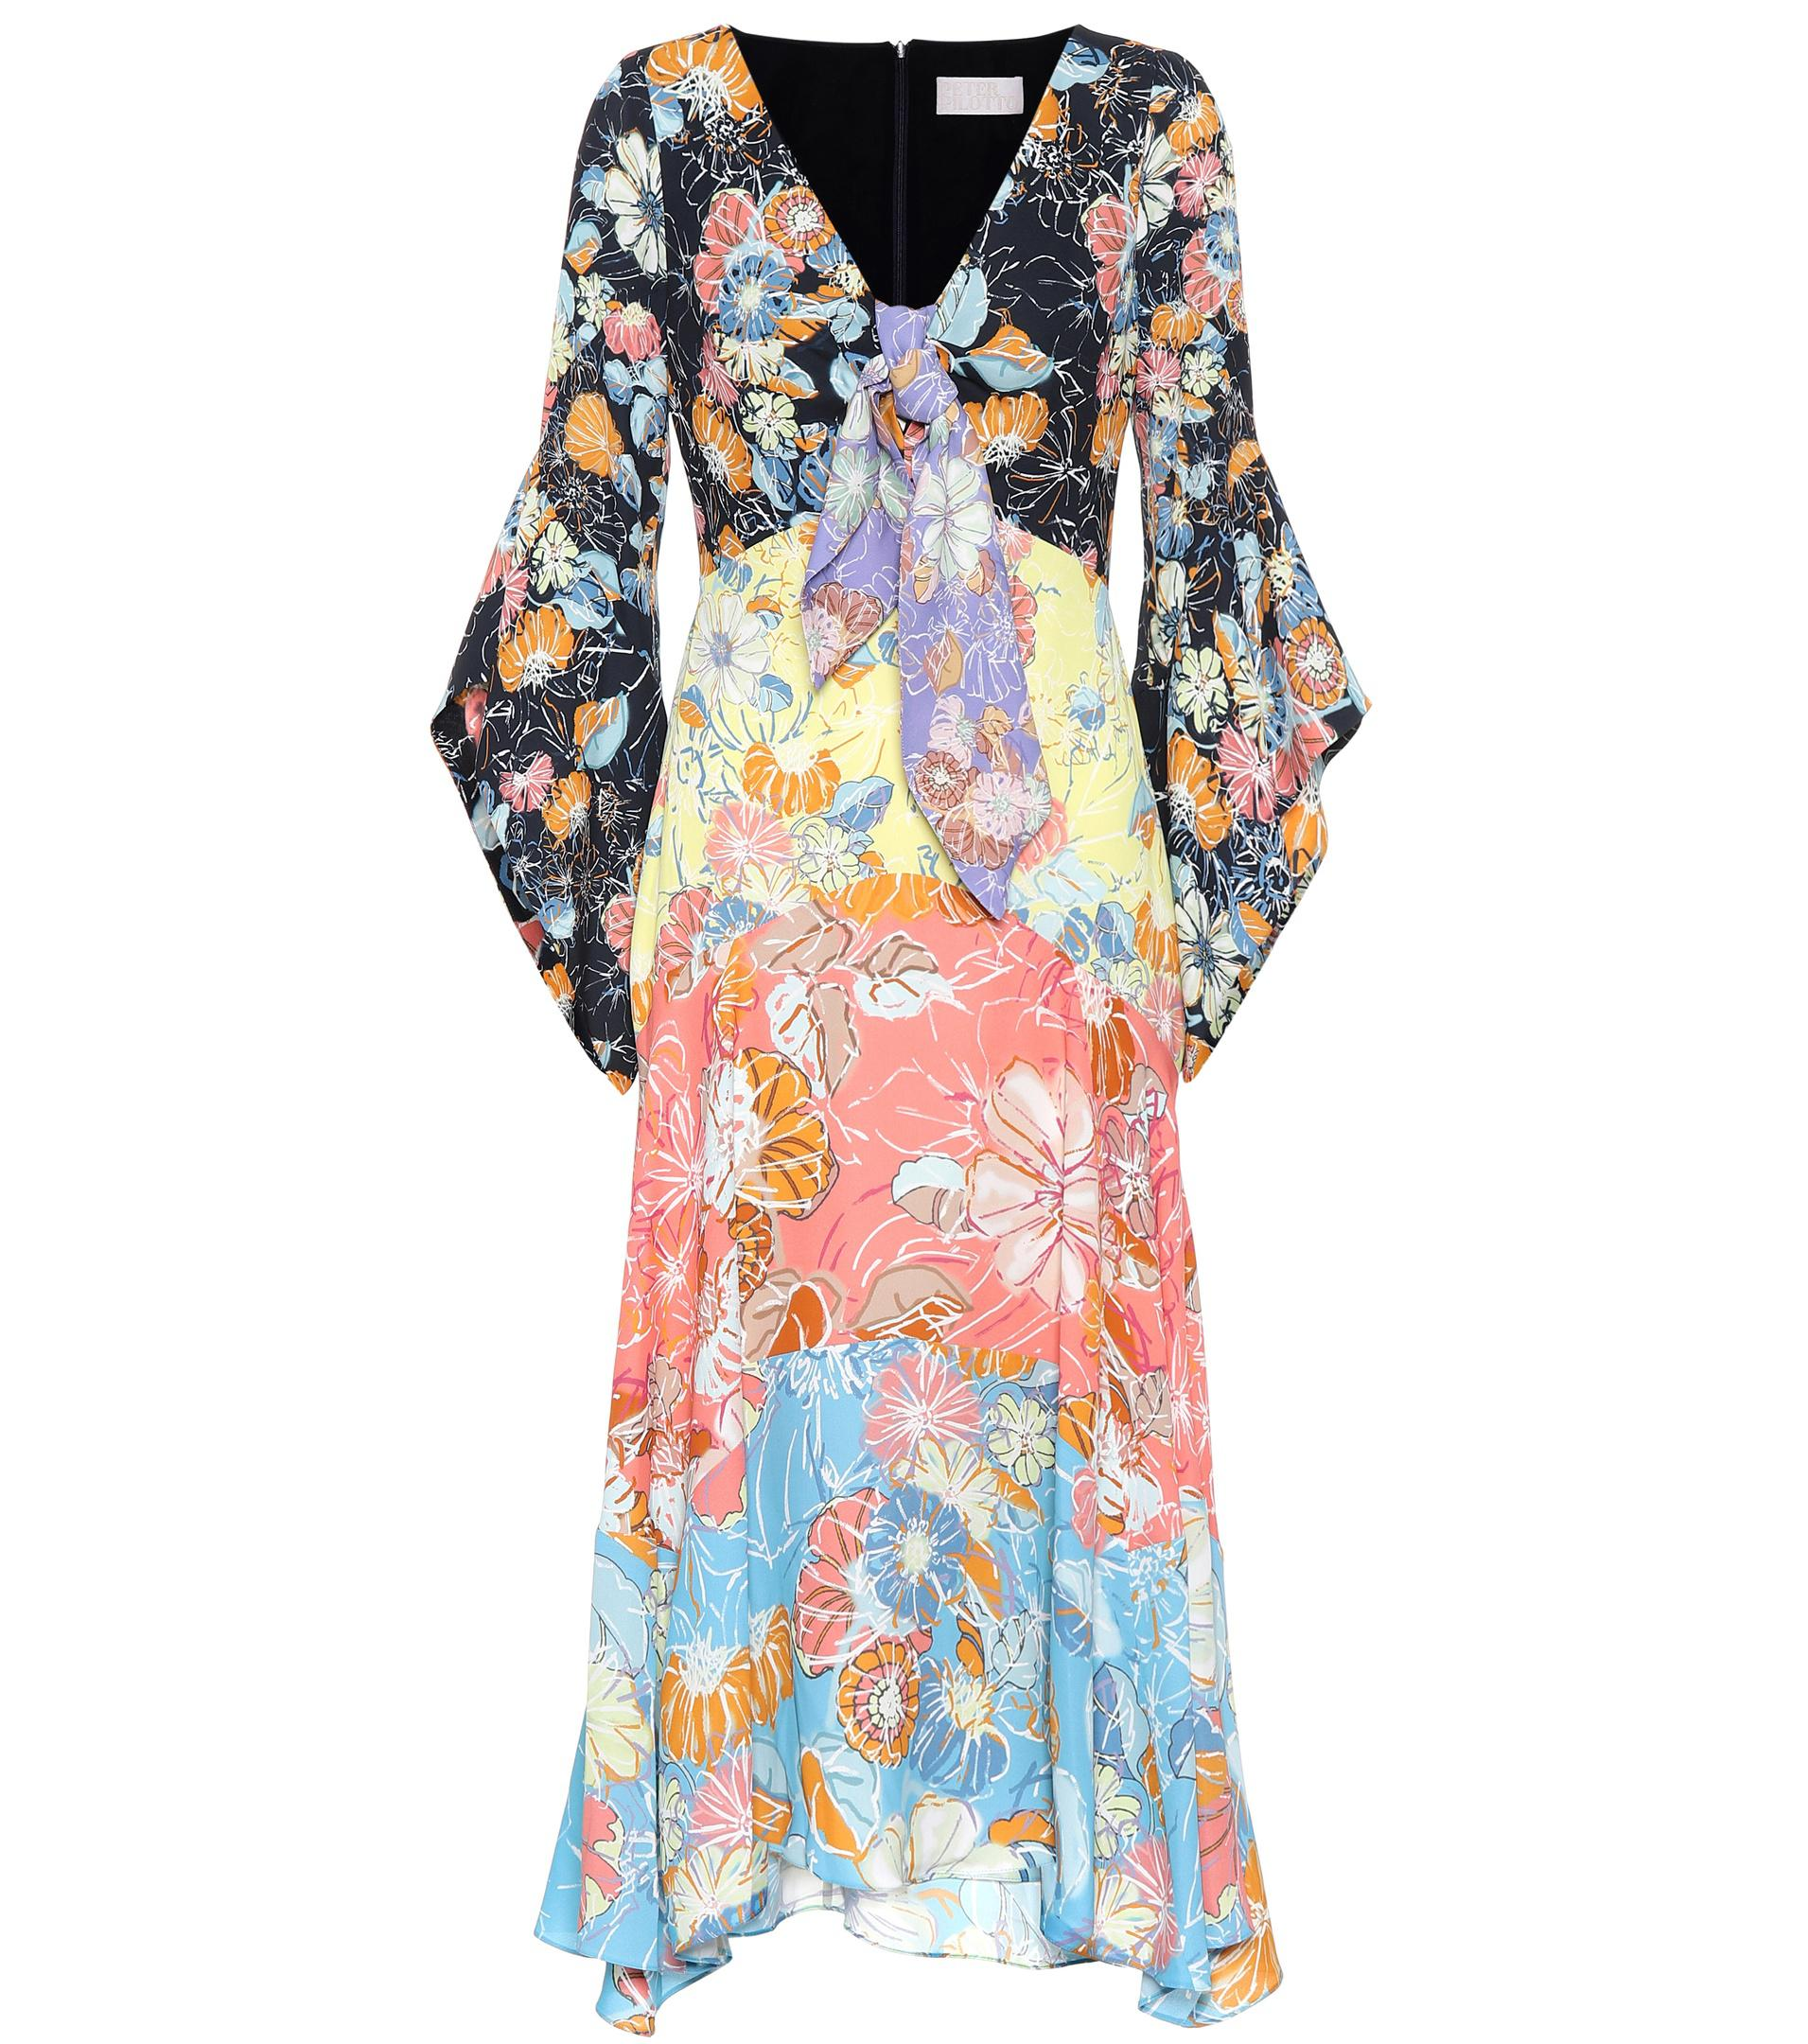 Floral-printed midi dress Peter Pilotto 4om8fB7e